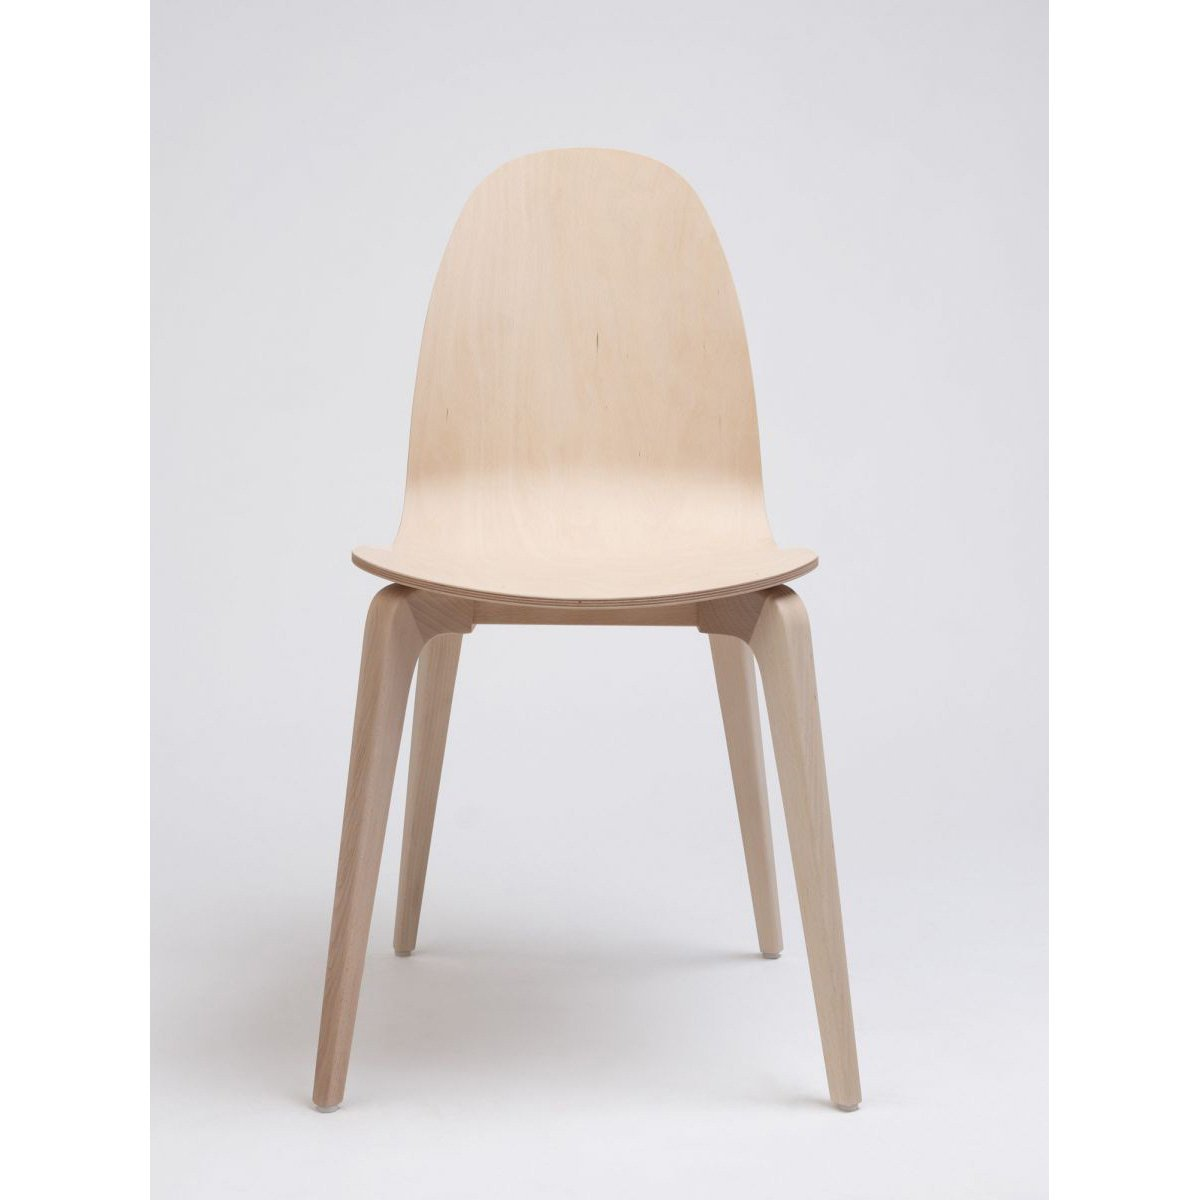 Bob Wood Chair